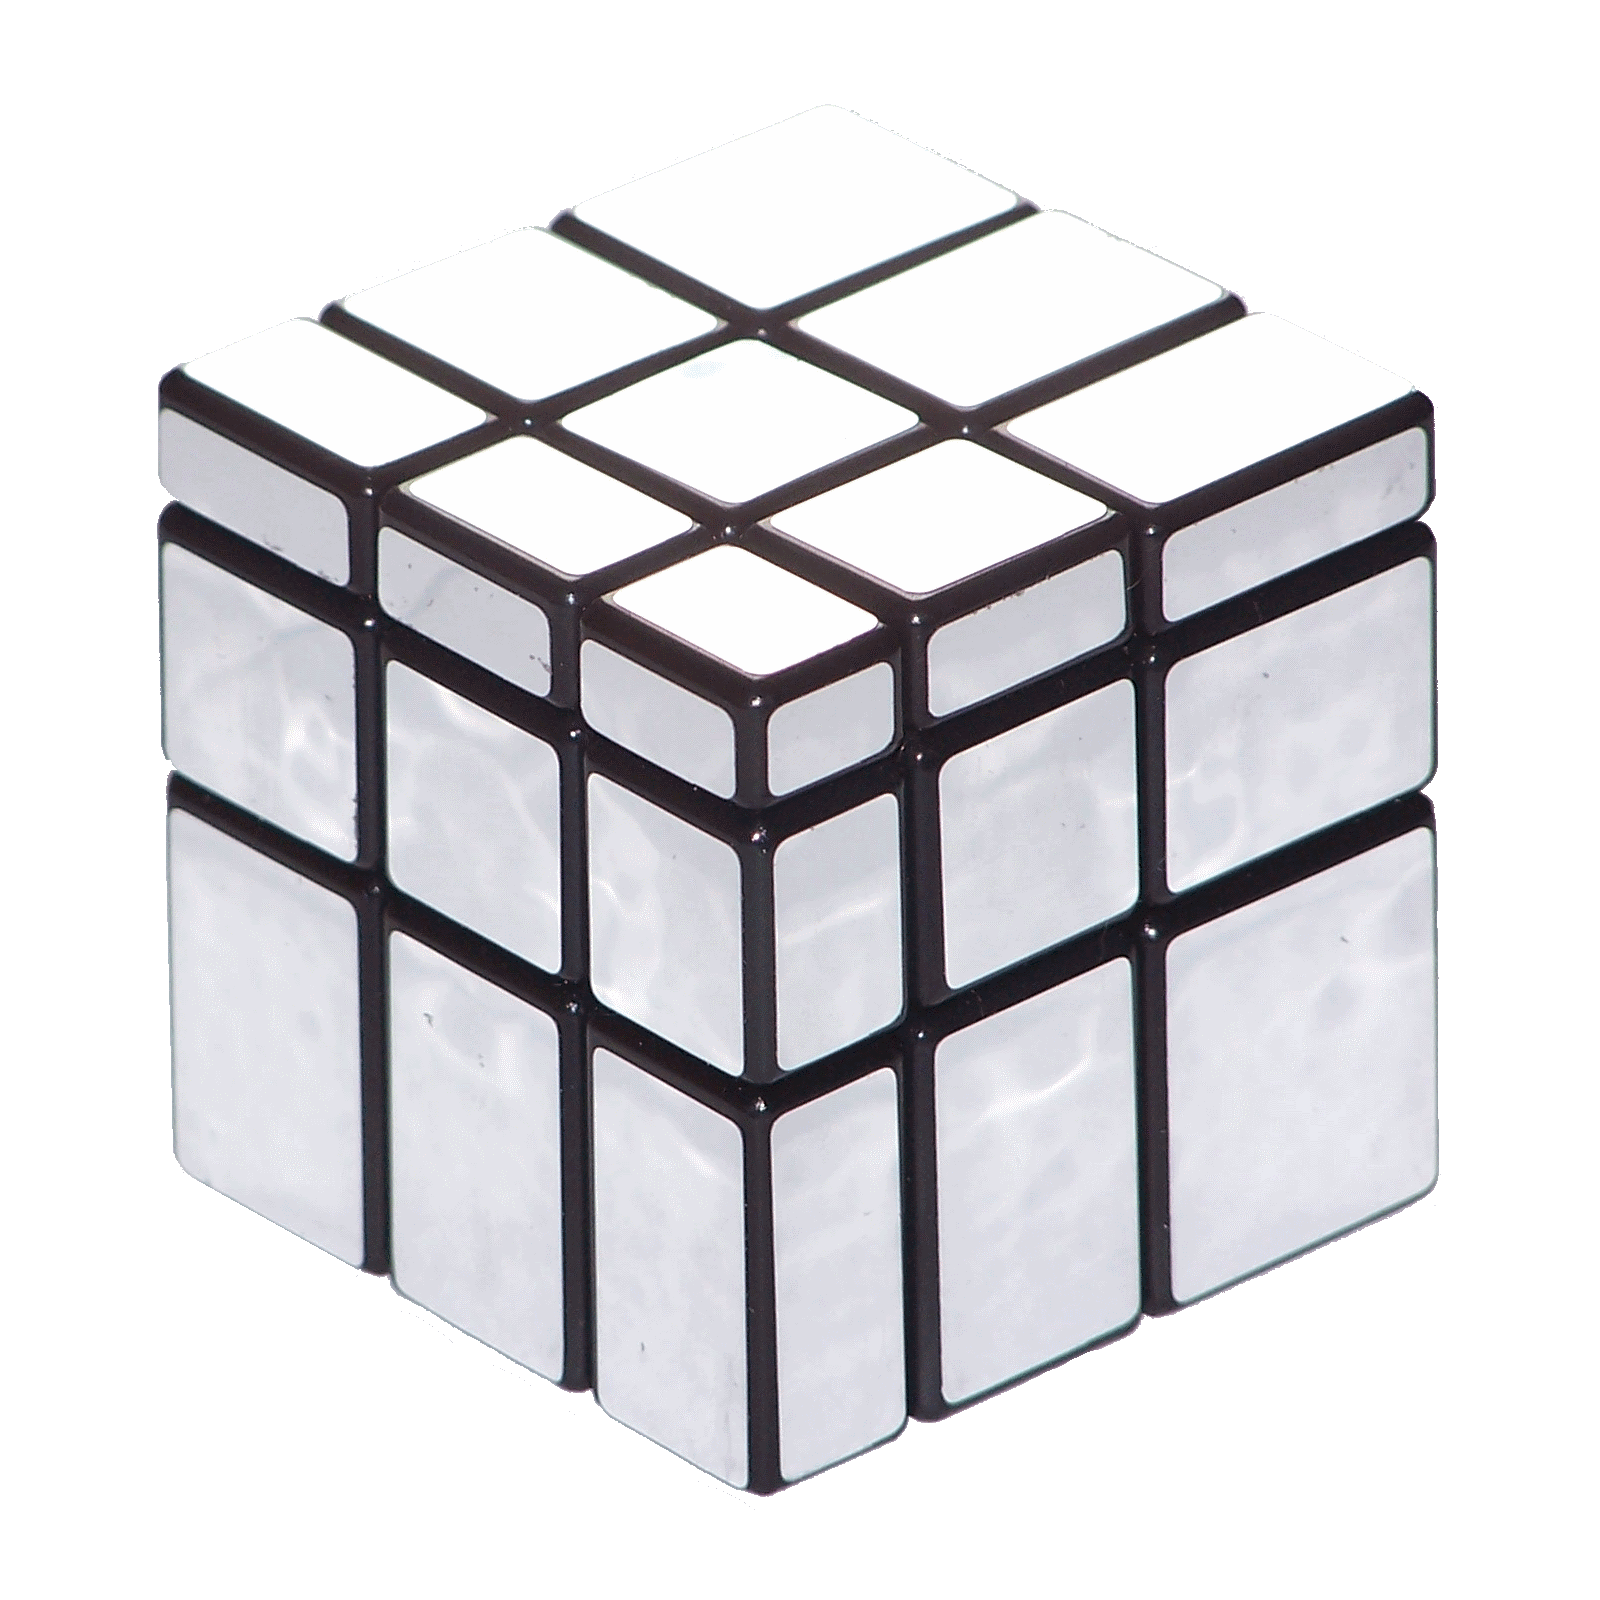 Mirror cube images frompo for Mirror rubik s cube